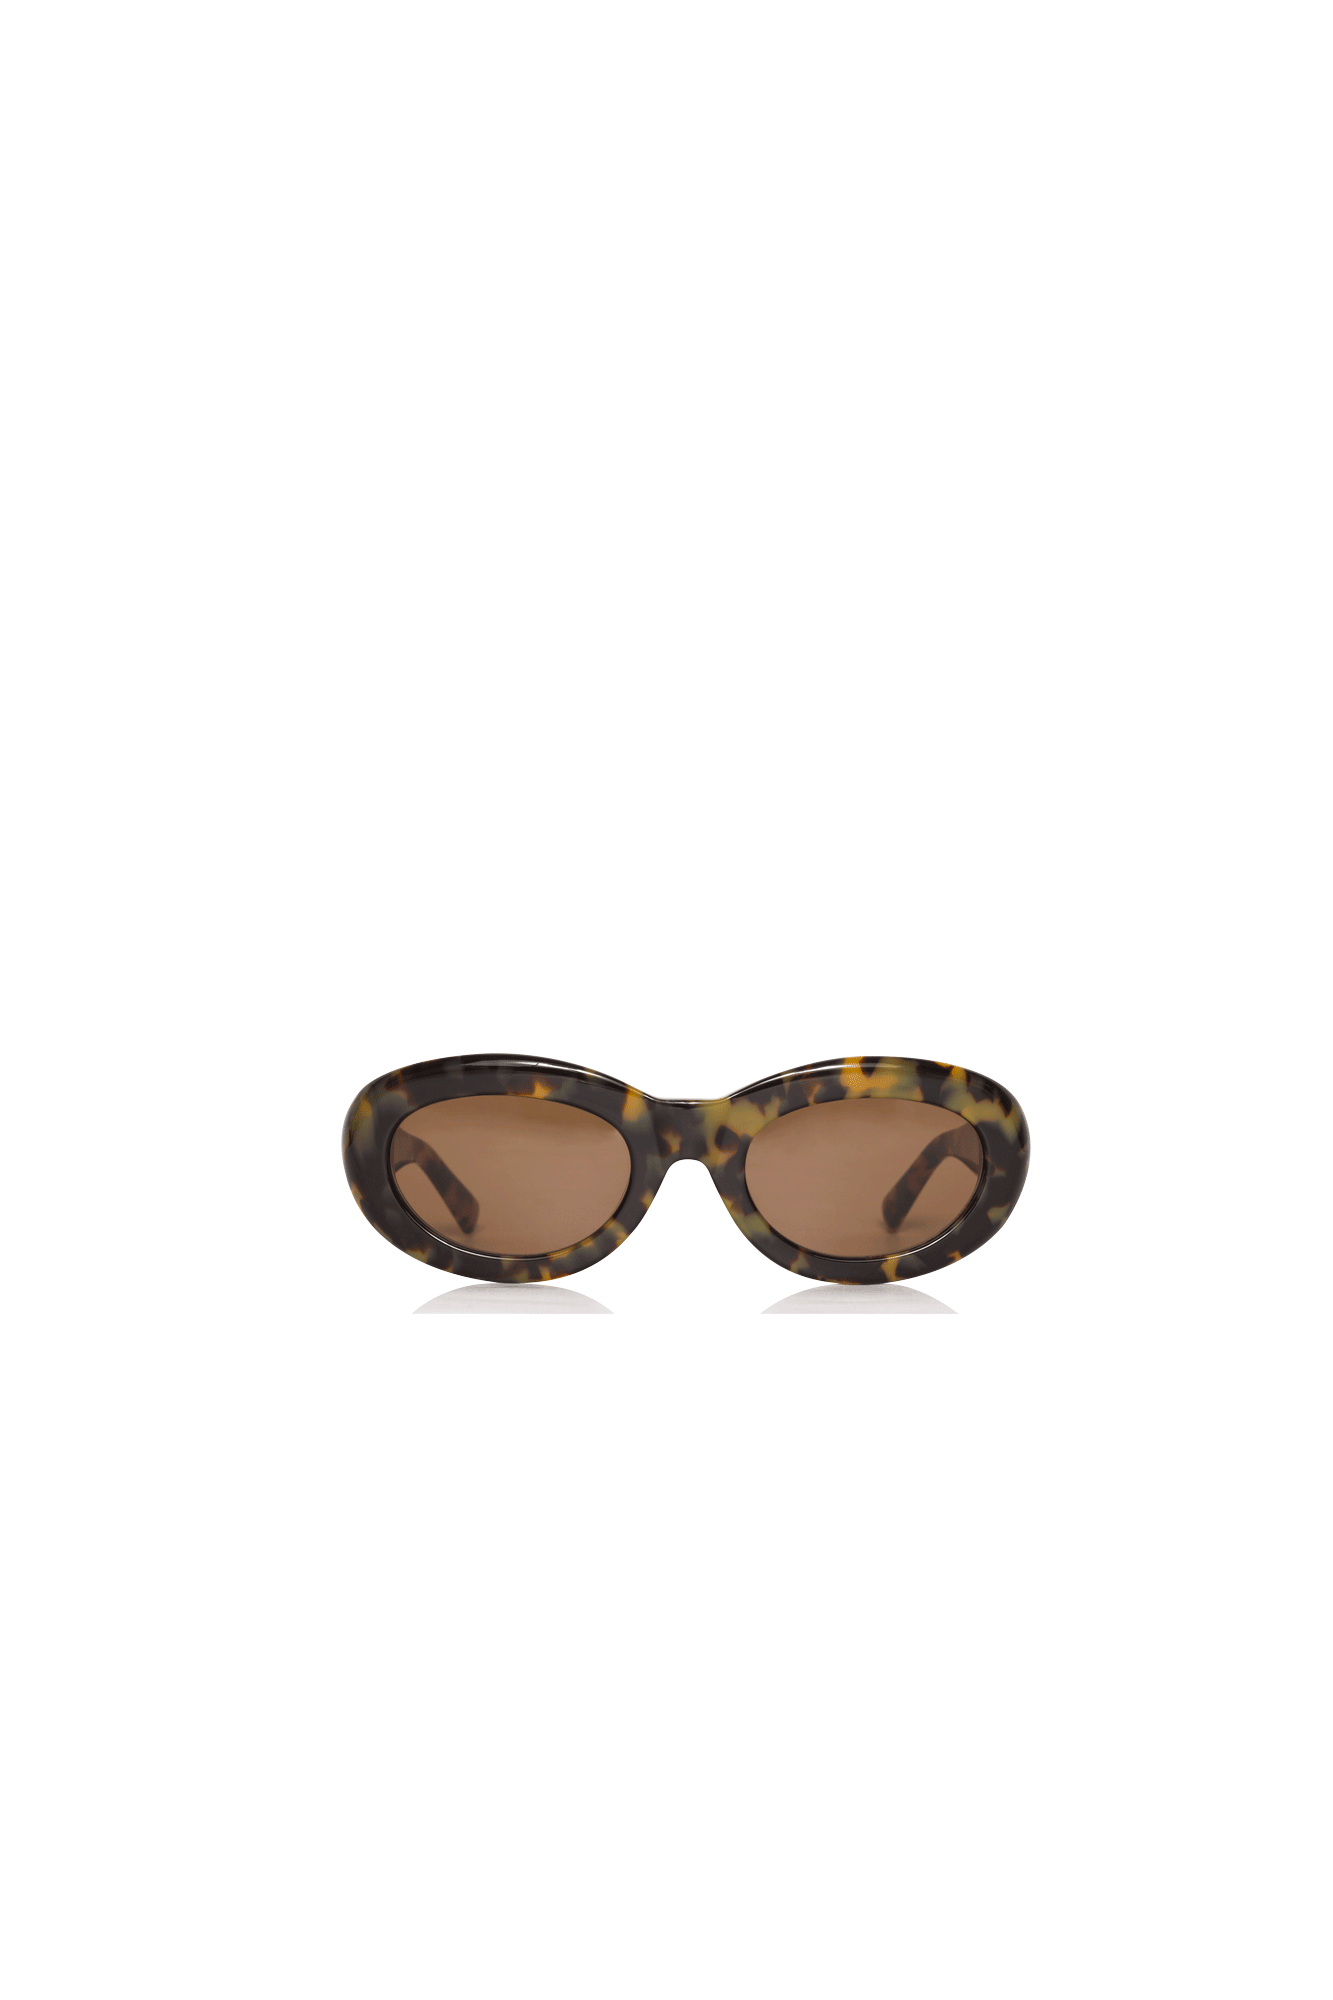 Sun Buddies Sunglasses COURTNEY Brown 9004.10.00#BLOND#TORT#OS - One Block Down